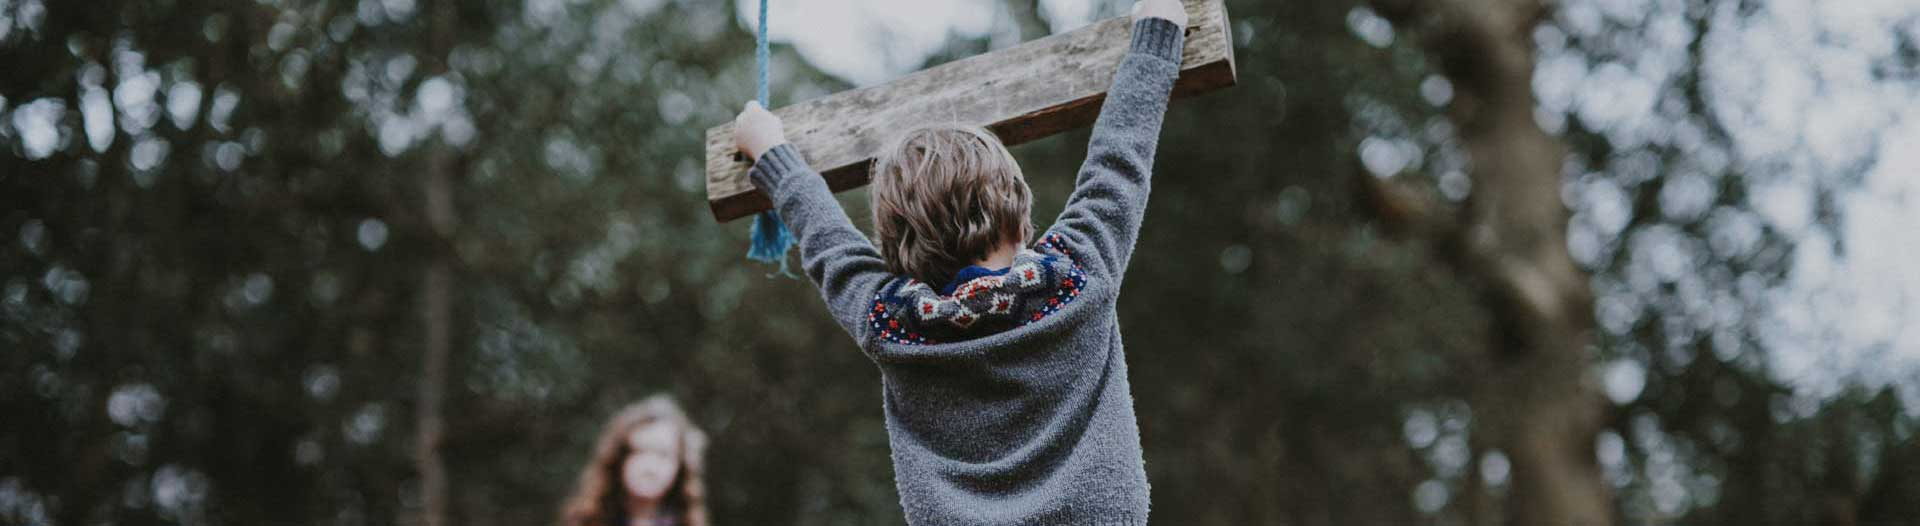 boy in sweater hanging from wooden swing